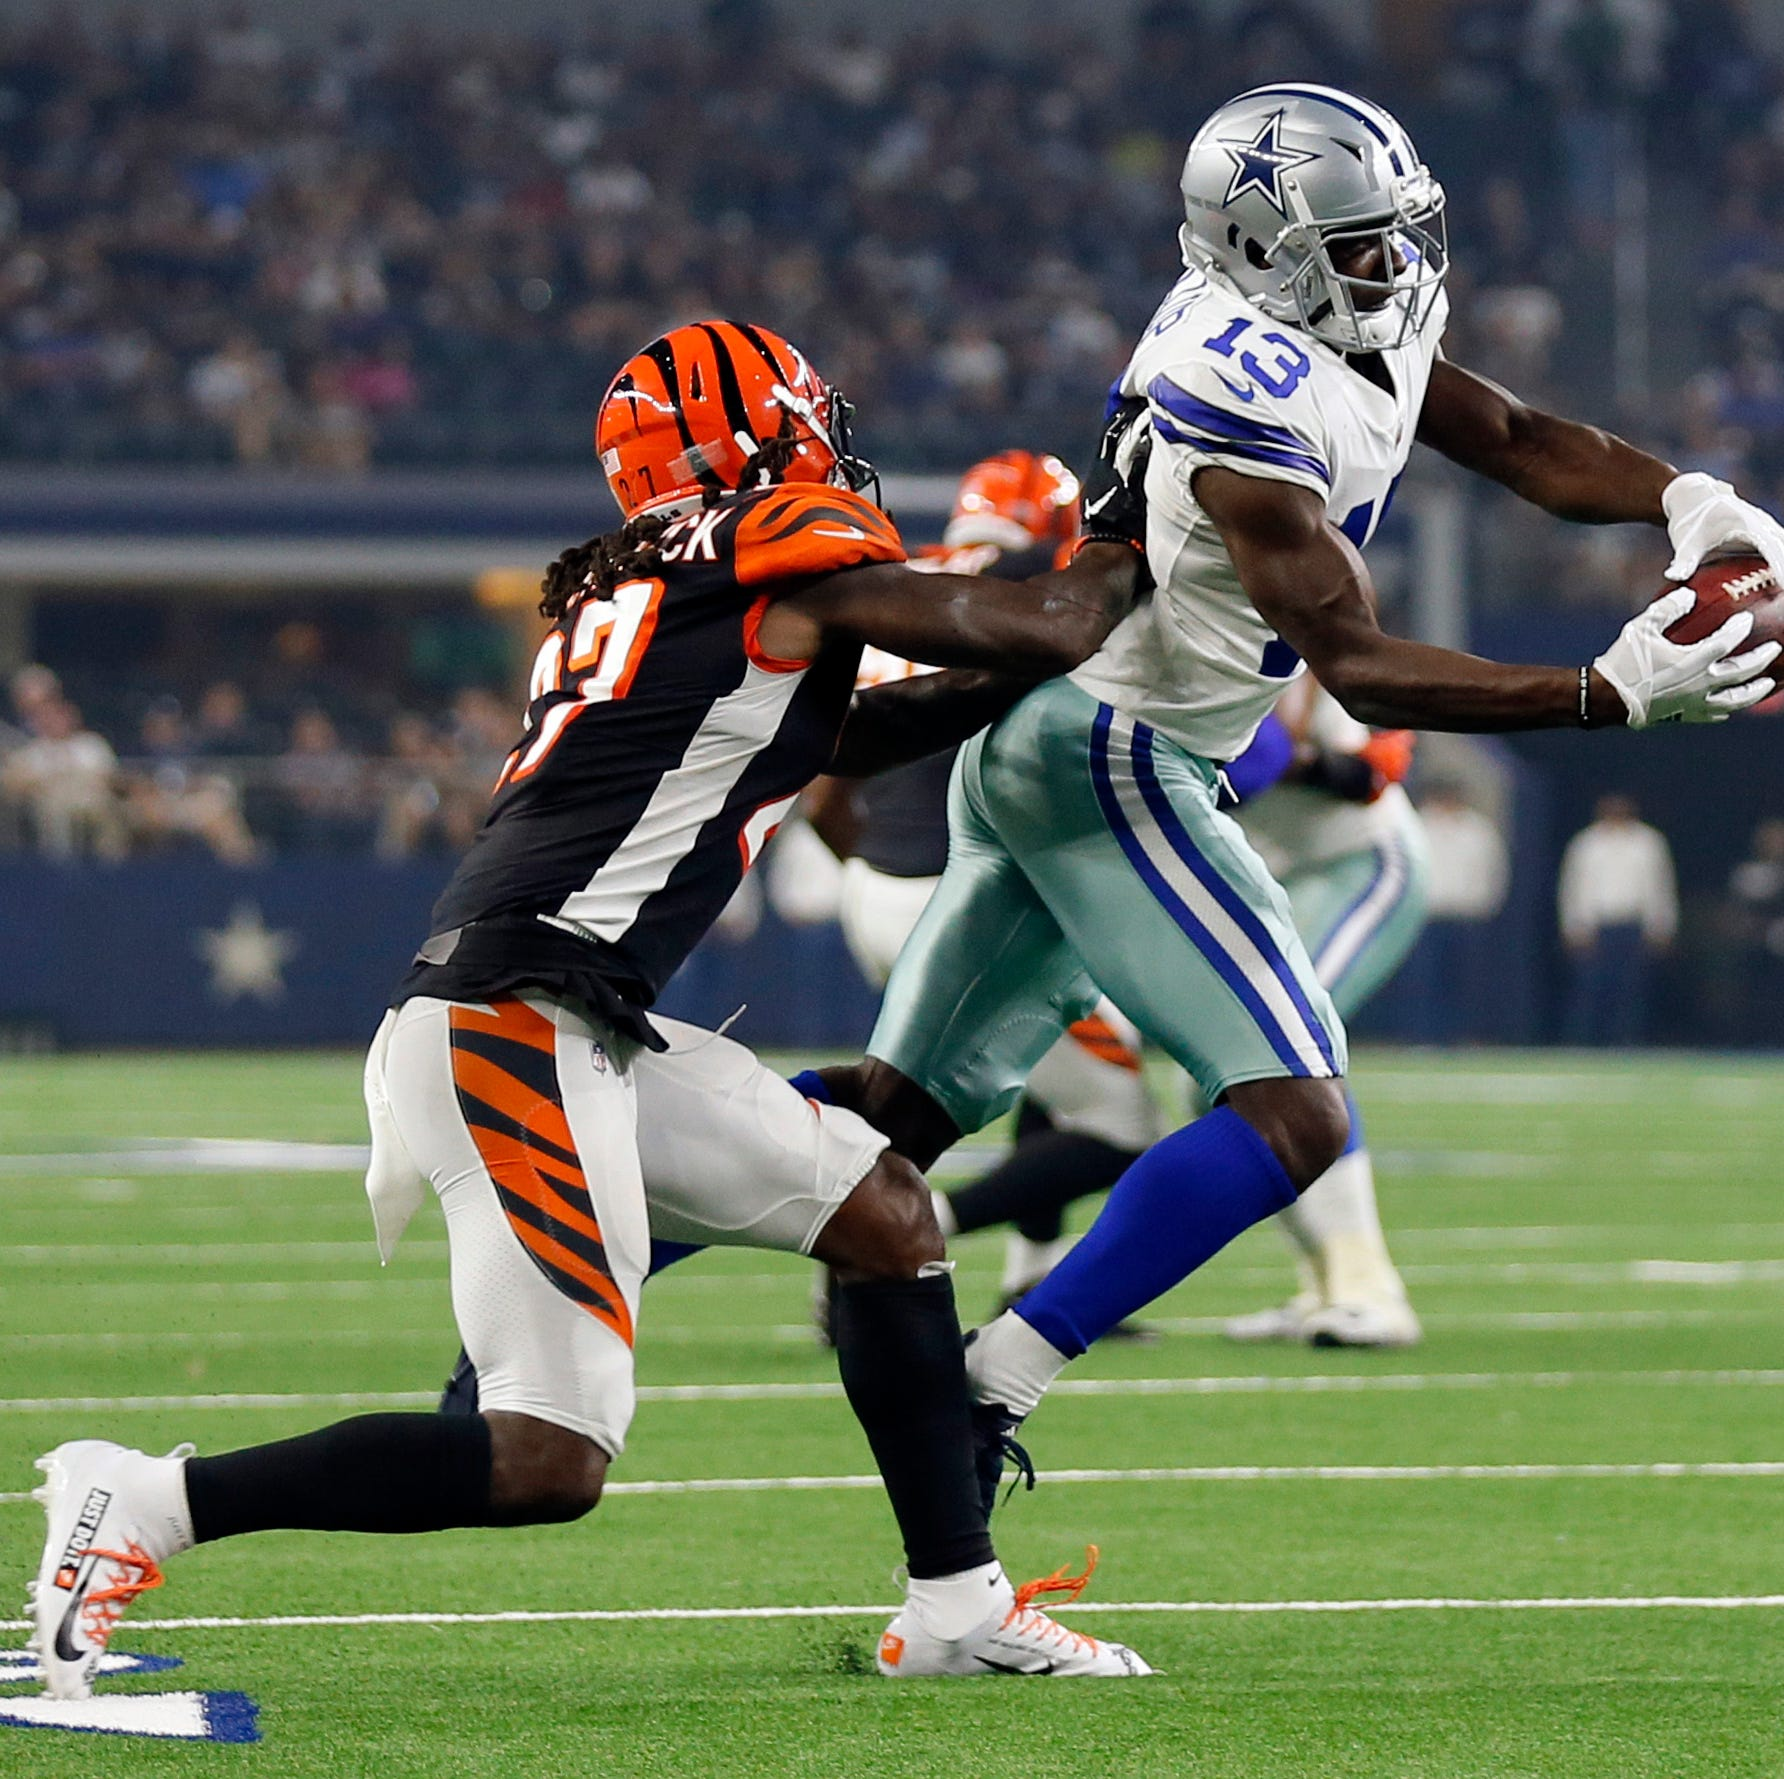 Two preseason games prove Dallas Cowboys better off without Dez Bryant